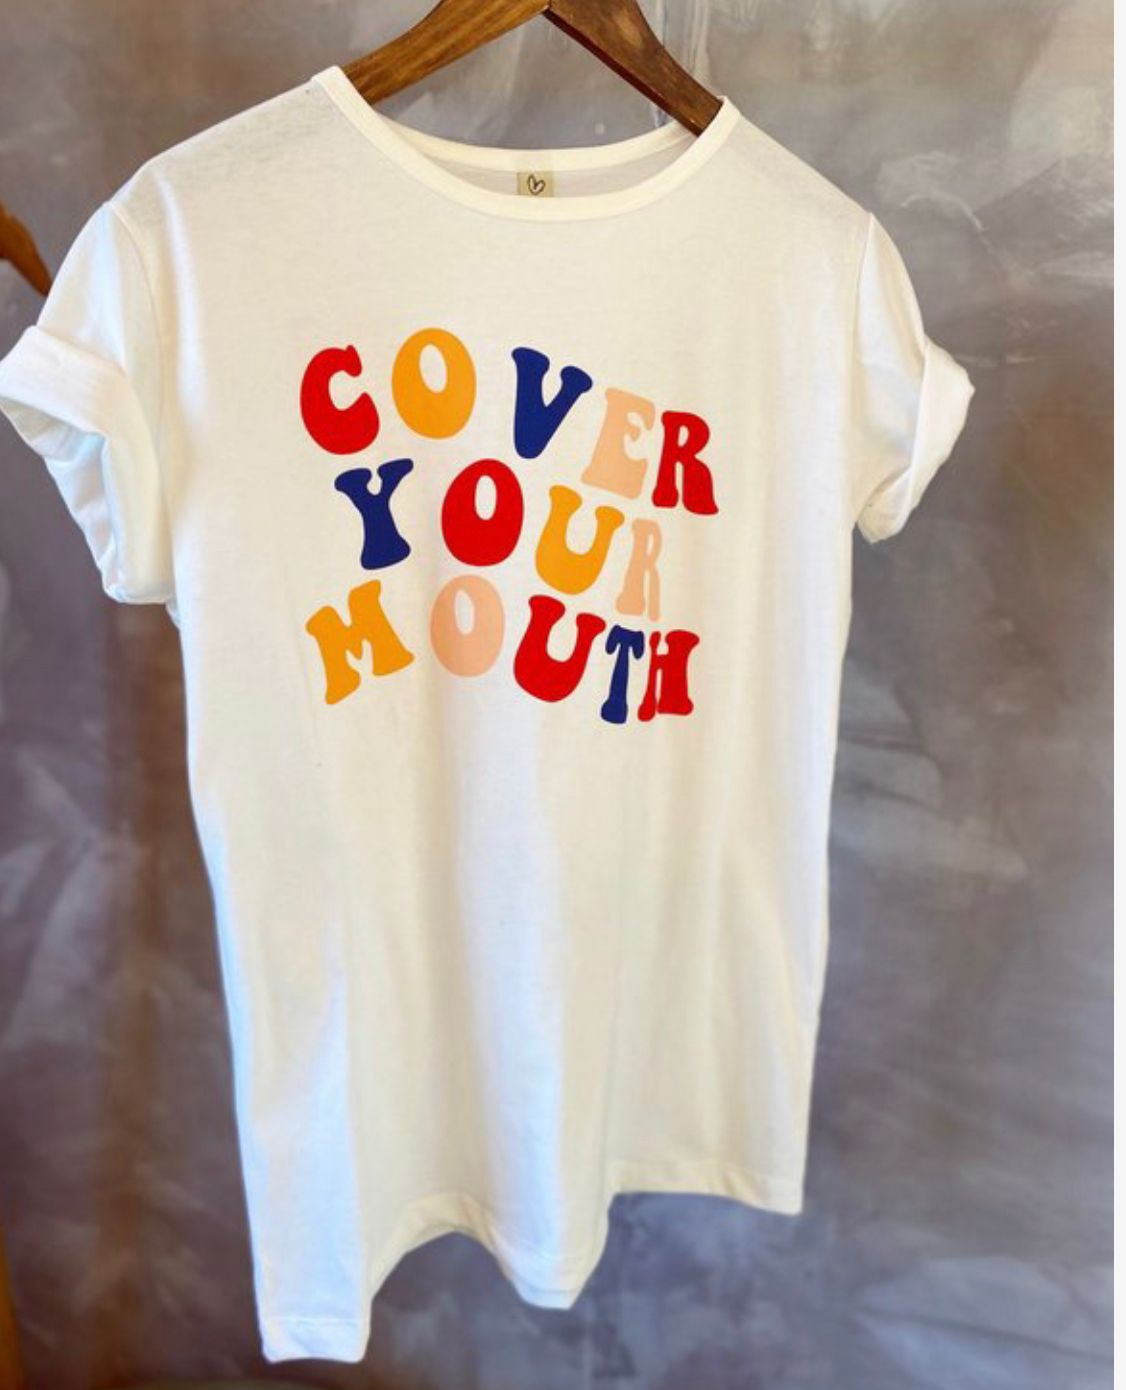 T-shirt MAX cover your mouth